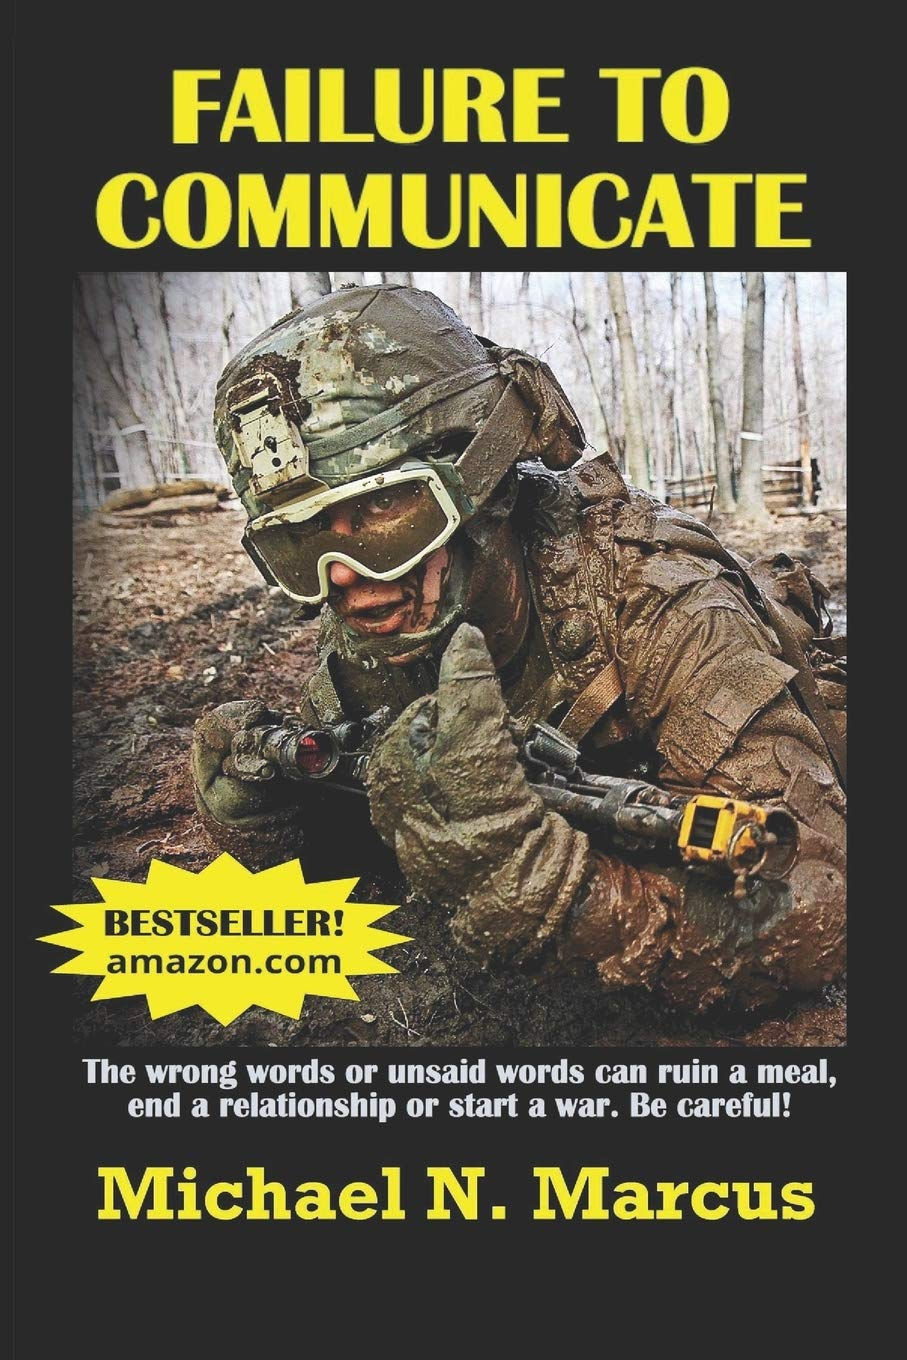 Image for Failure To Communicate: The wrong words or unsaid words (even imagined words) can ruin a meal, end a relationship or start a war. Be careful!